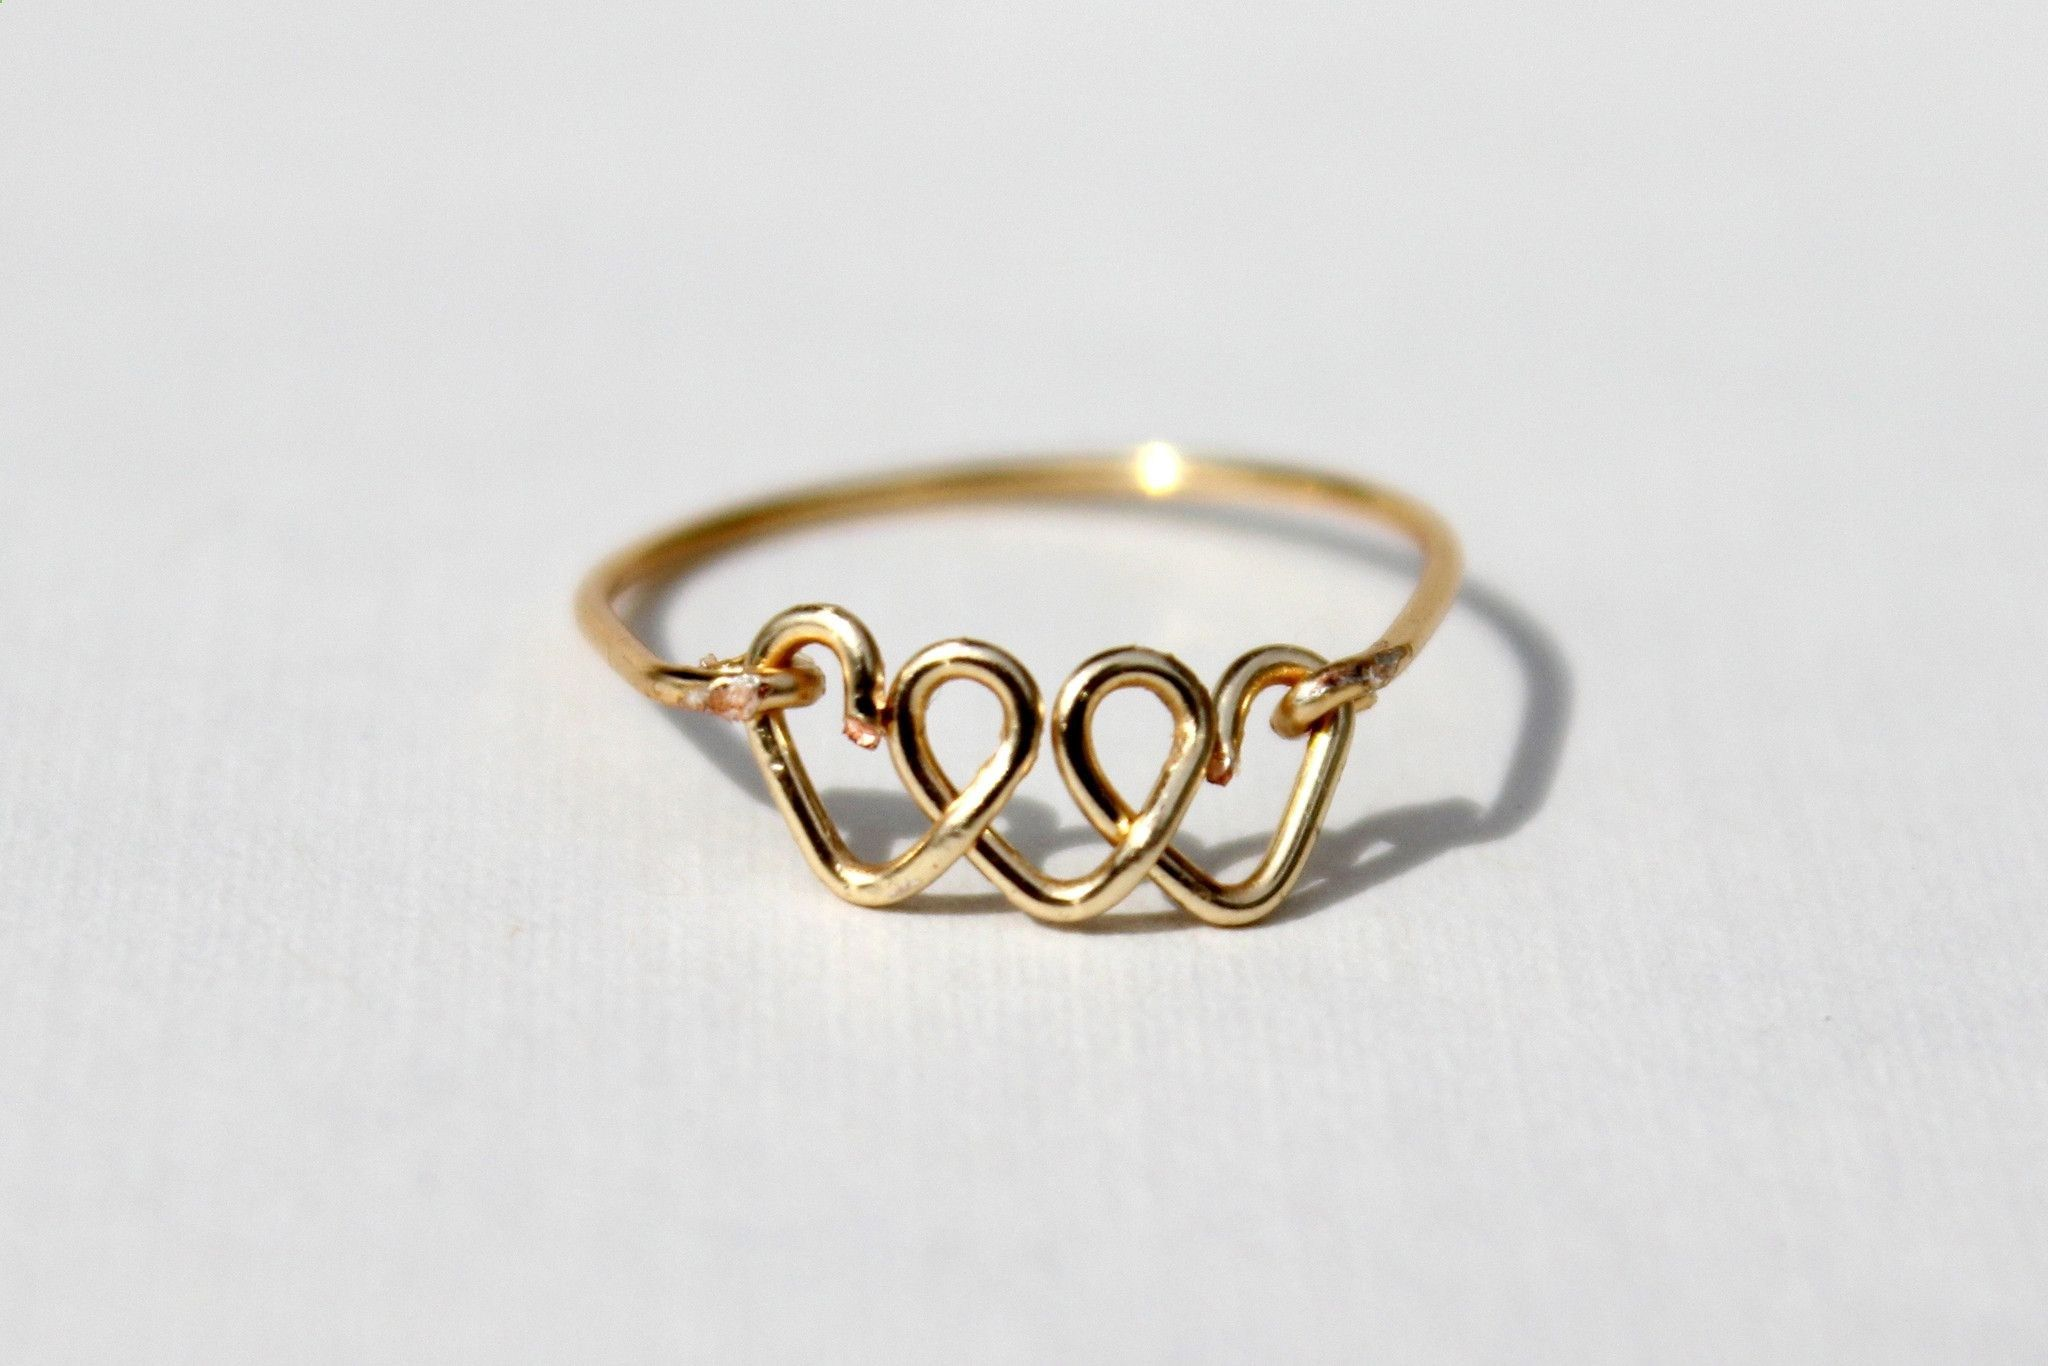 This is a gold triple heart ring made out of non-tarnish gold or ...